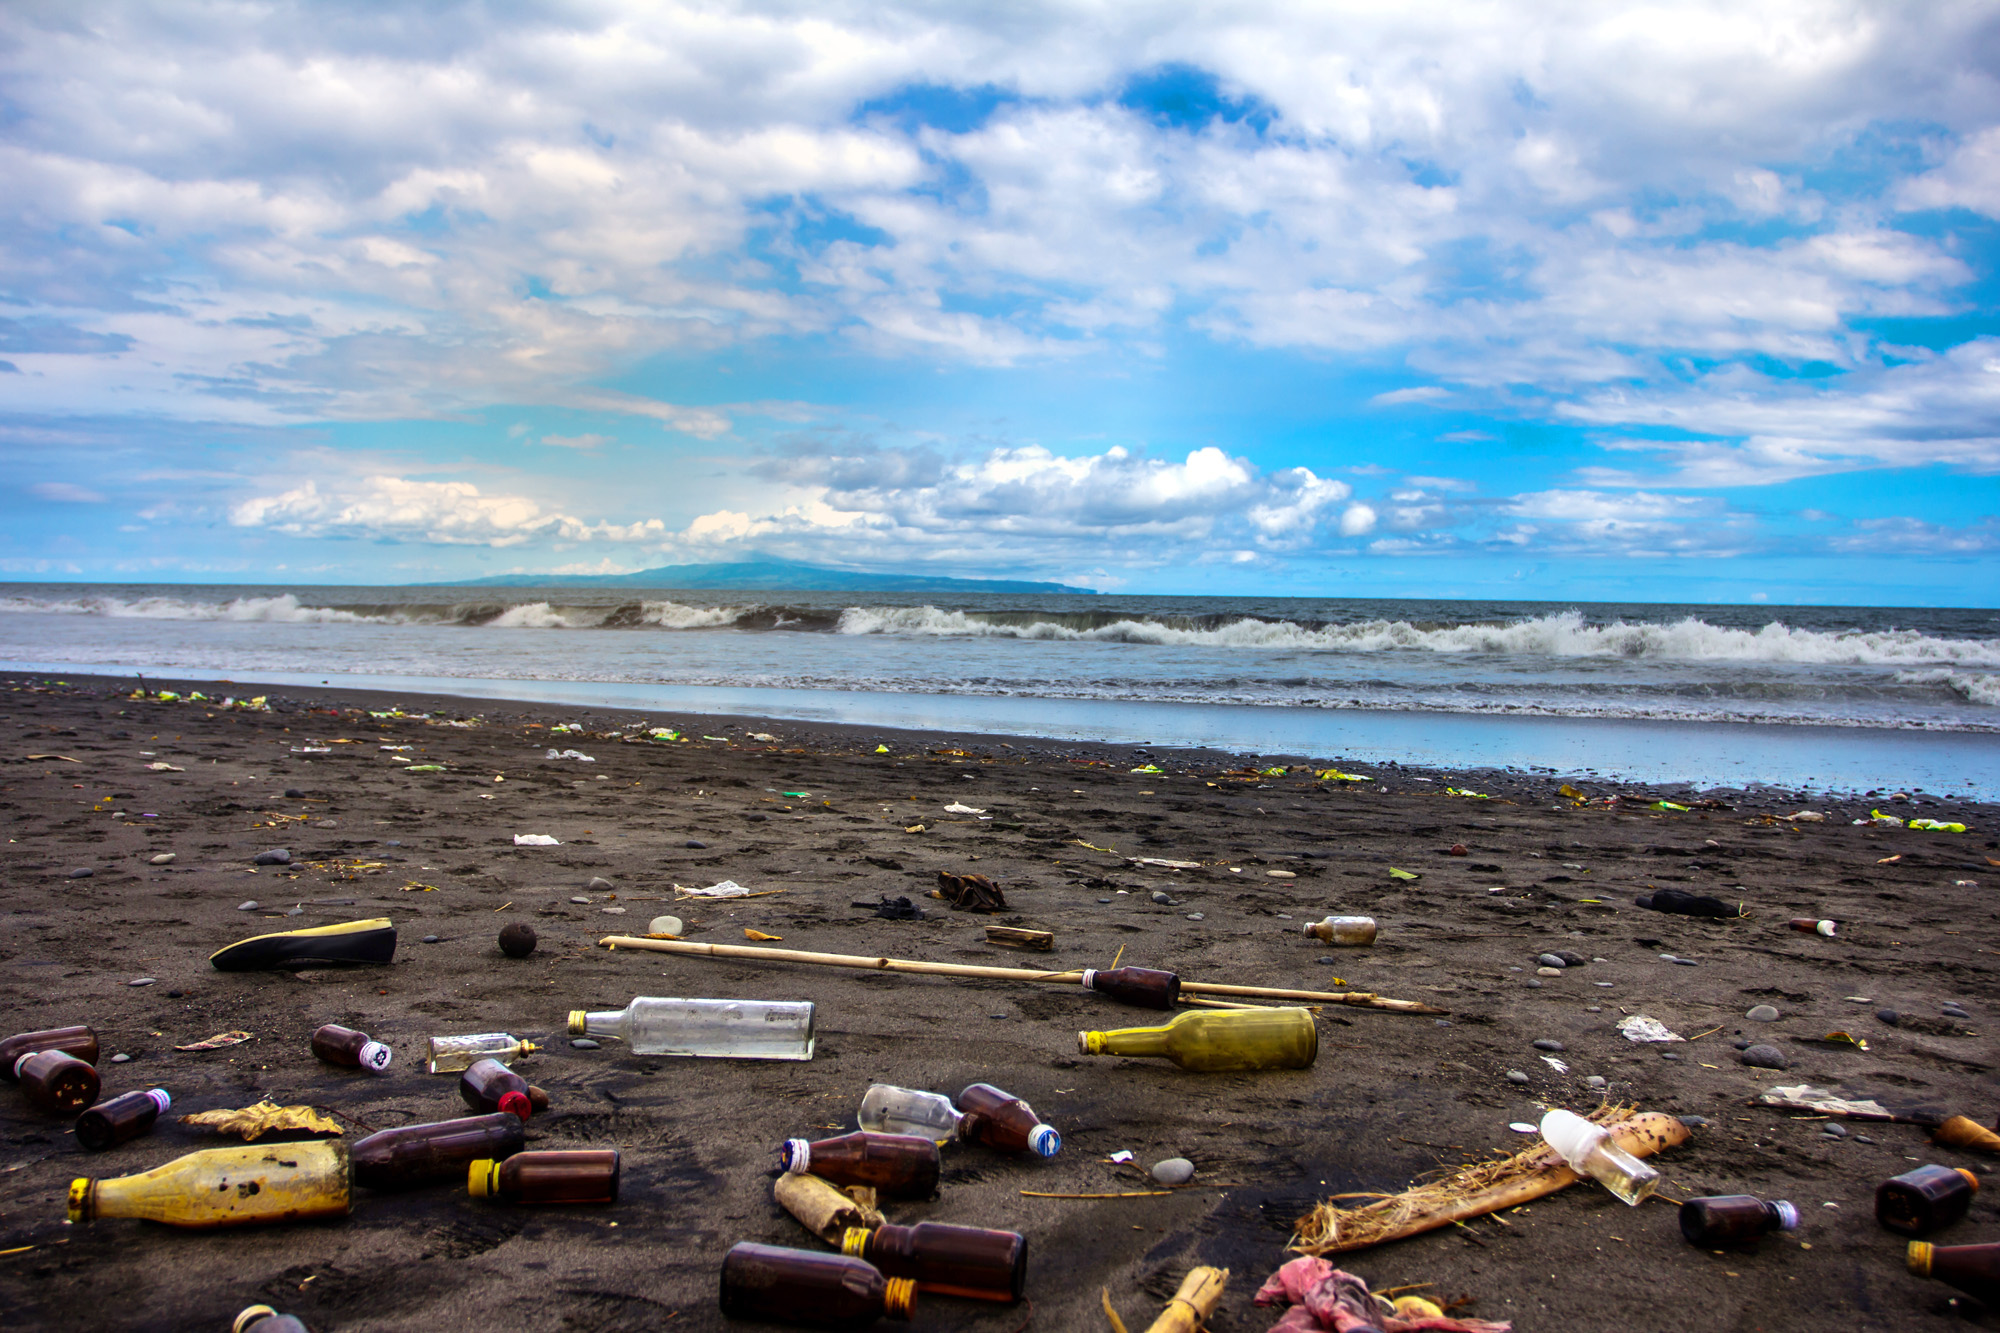 Ketewel Beach in Gianyar Regency: one of Bali's many polluted beaches.